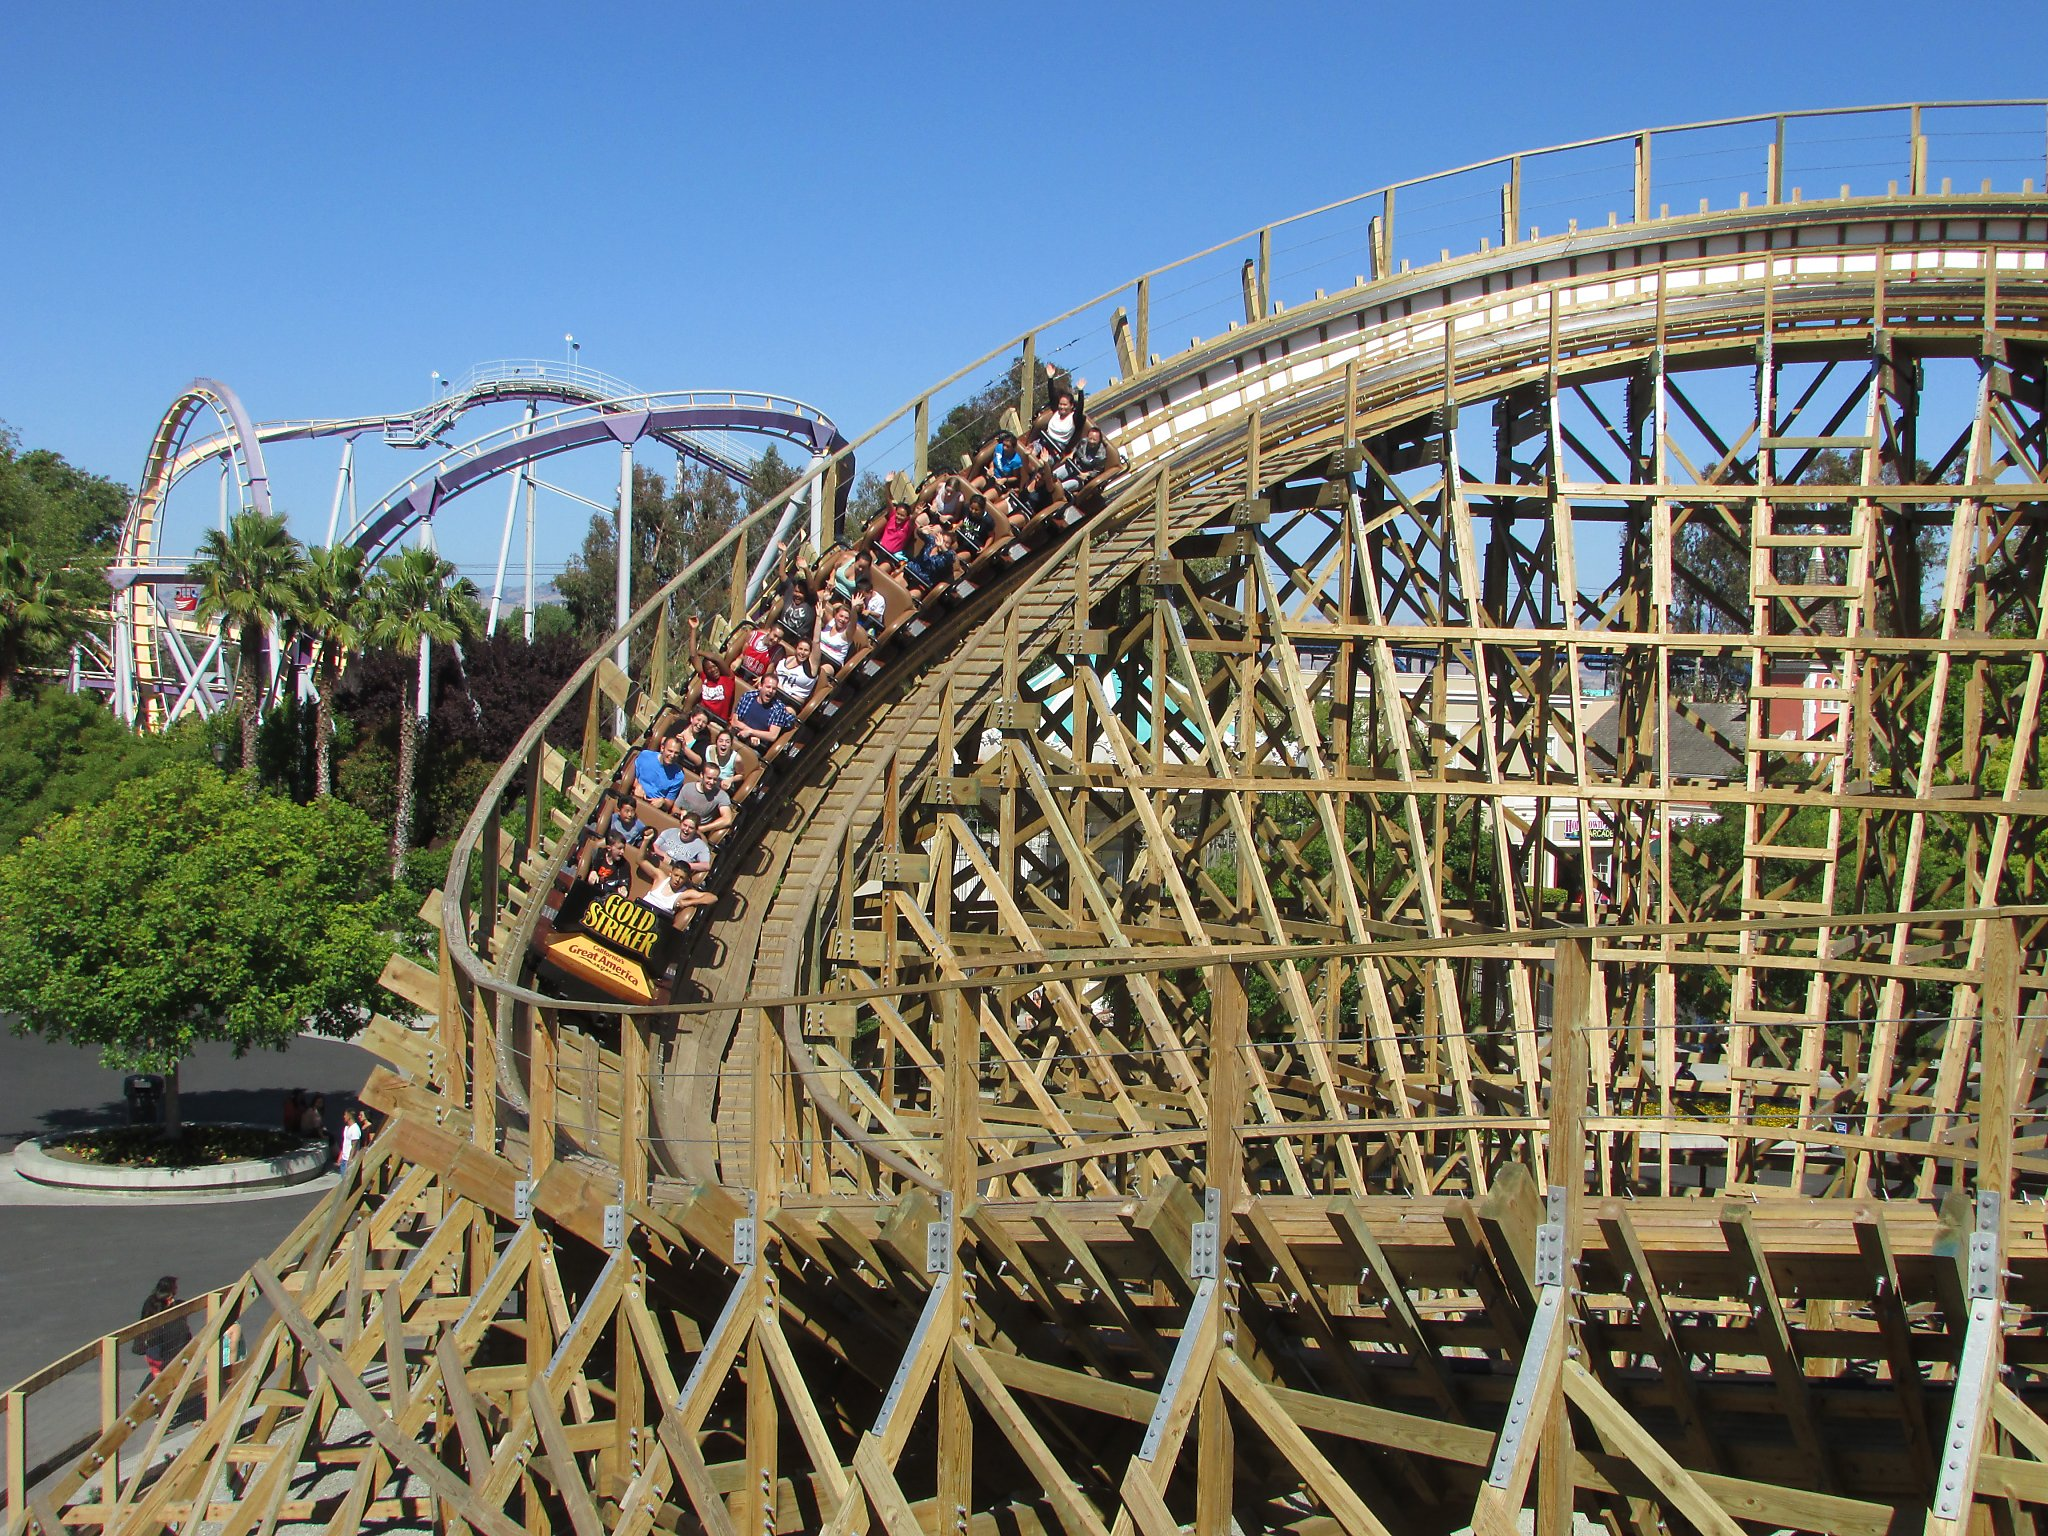 Today's Special: Ranking the Bay Area's 13 roller coasters